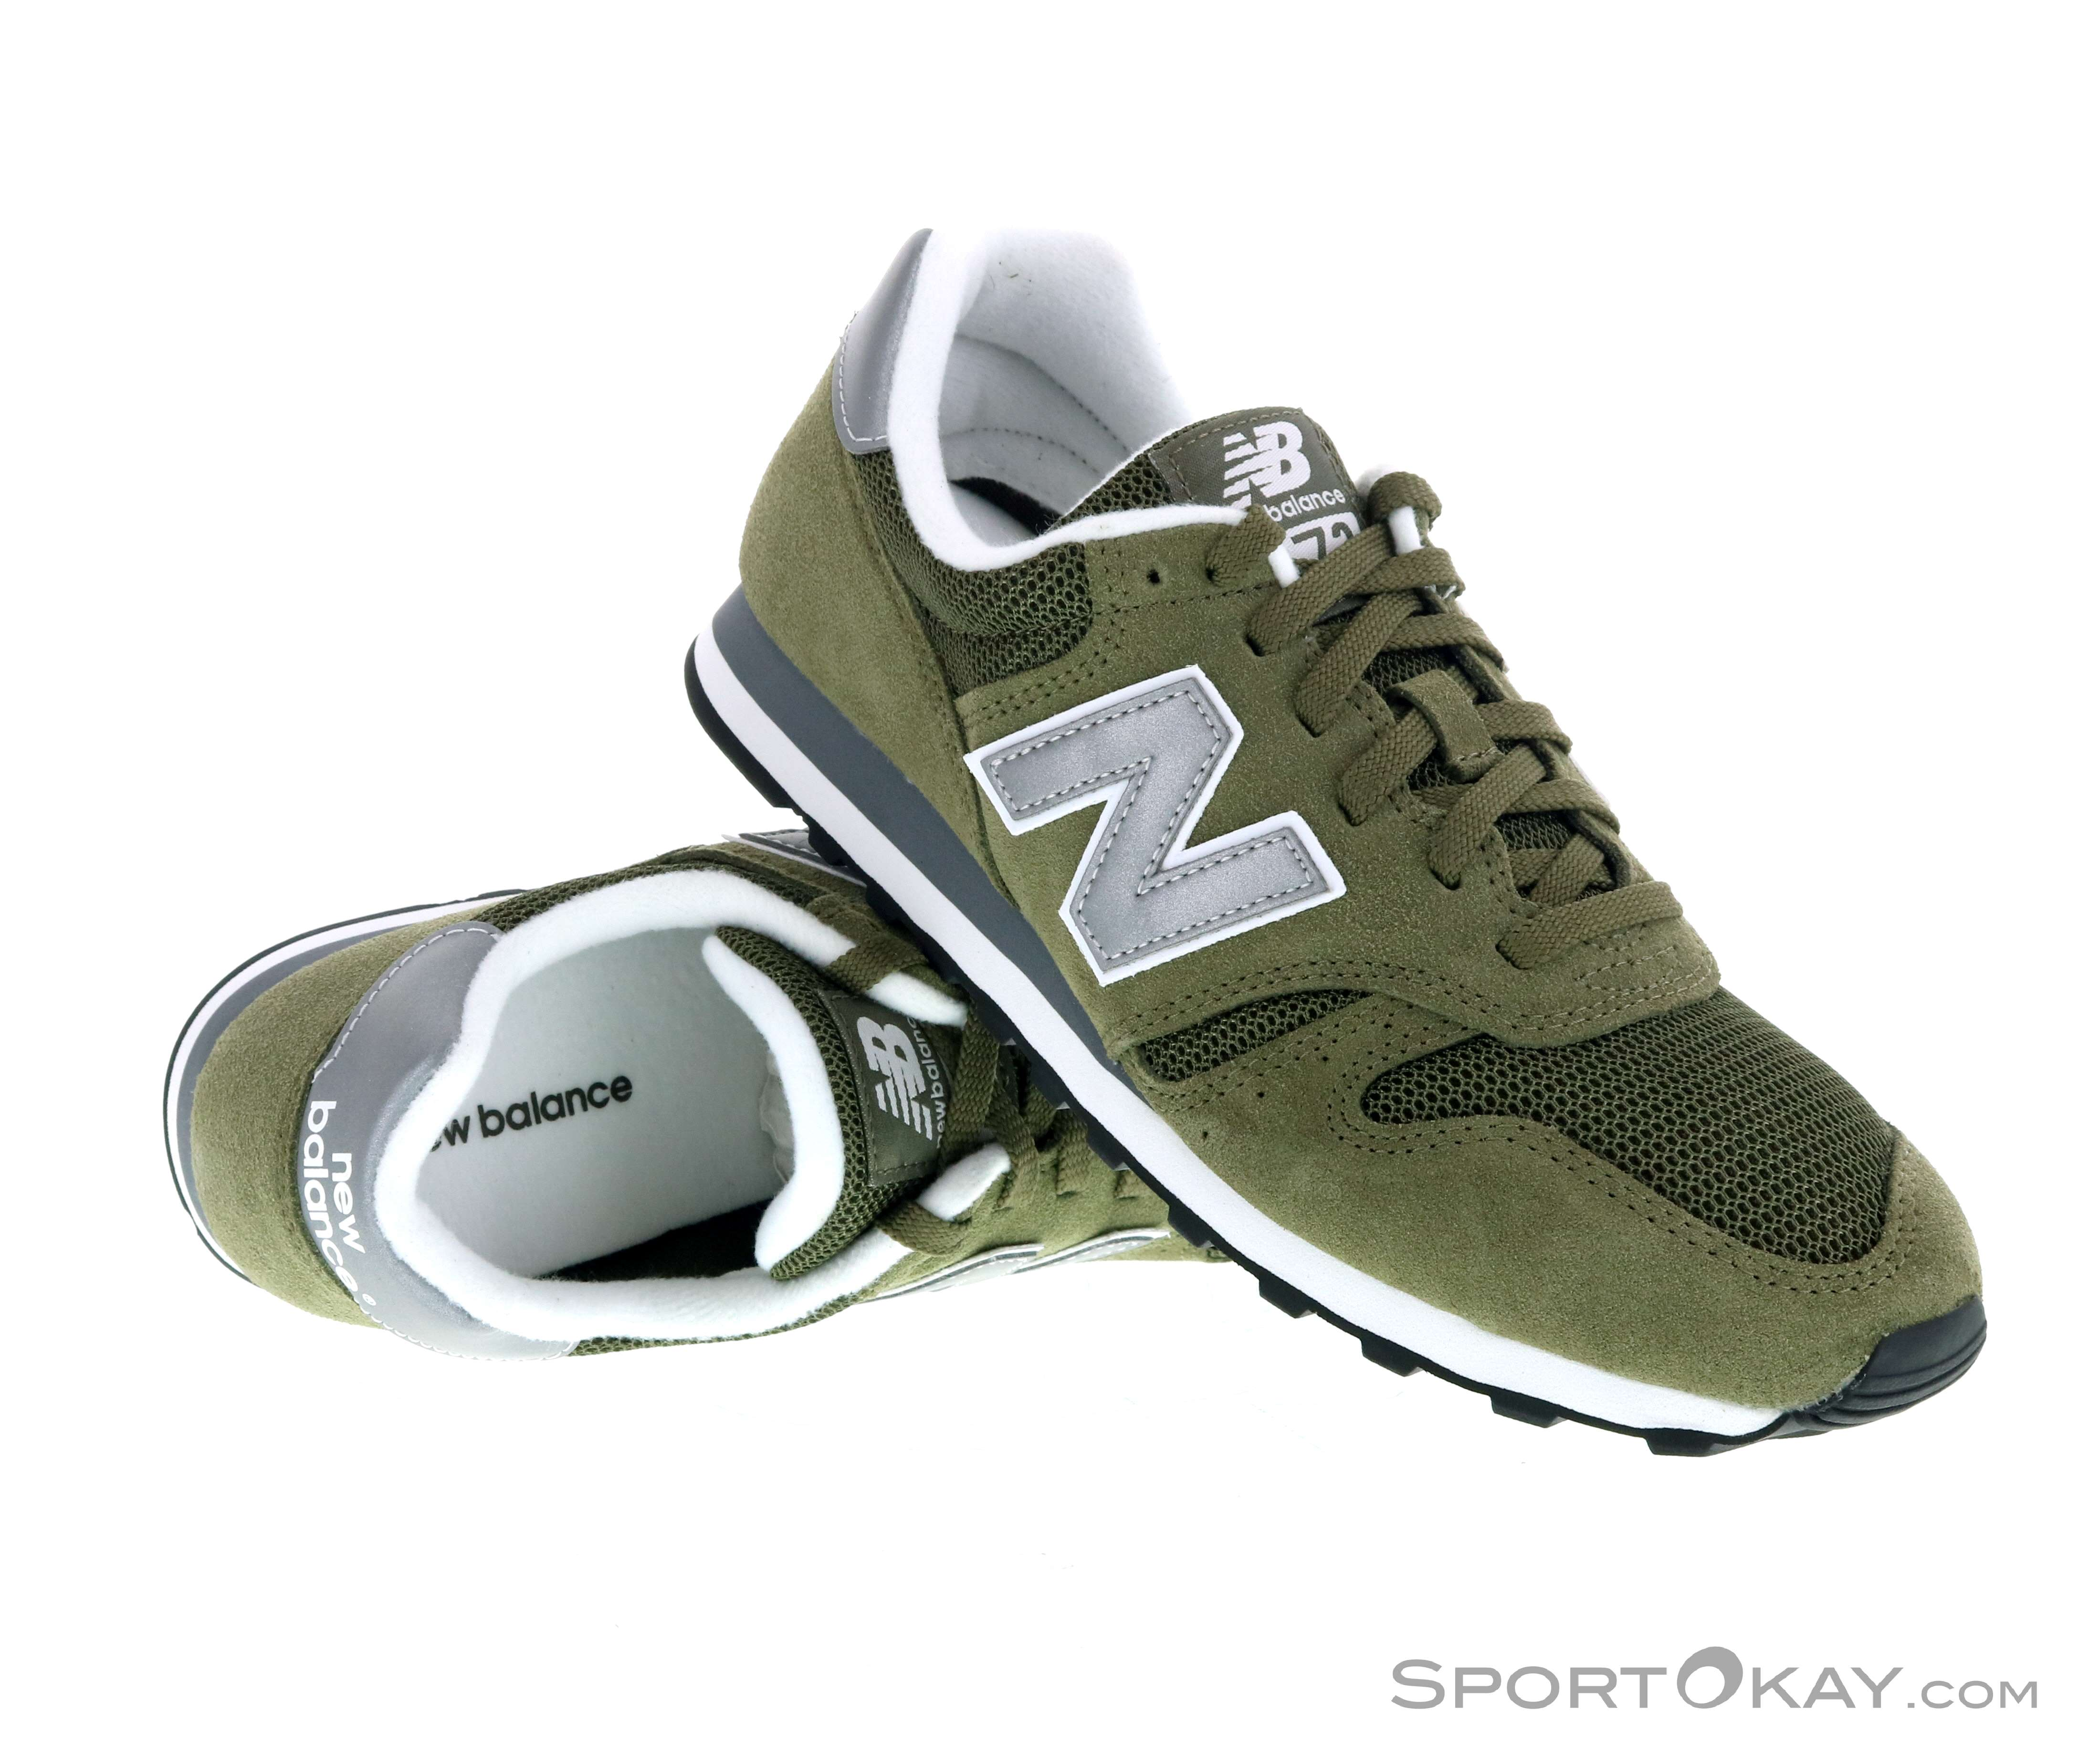 separation shoes 62af4 41140 New Balance New Balance 373 Modern Classics Leisure Shoes